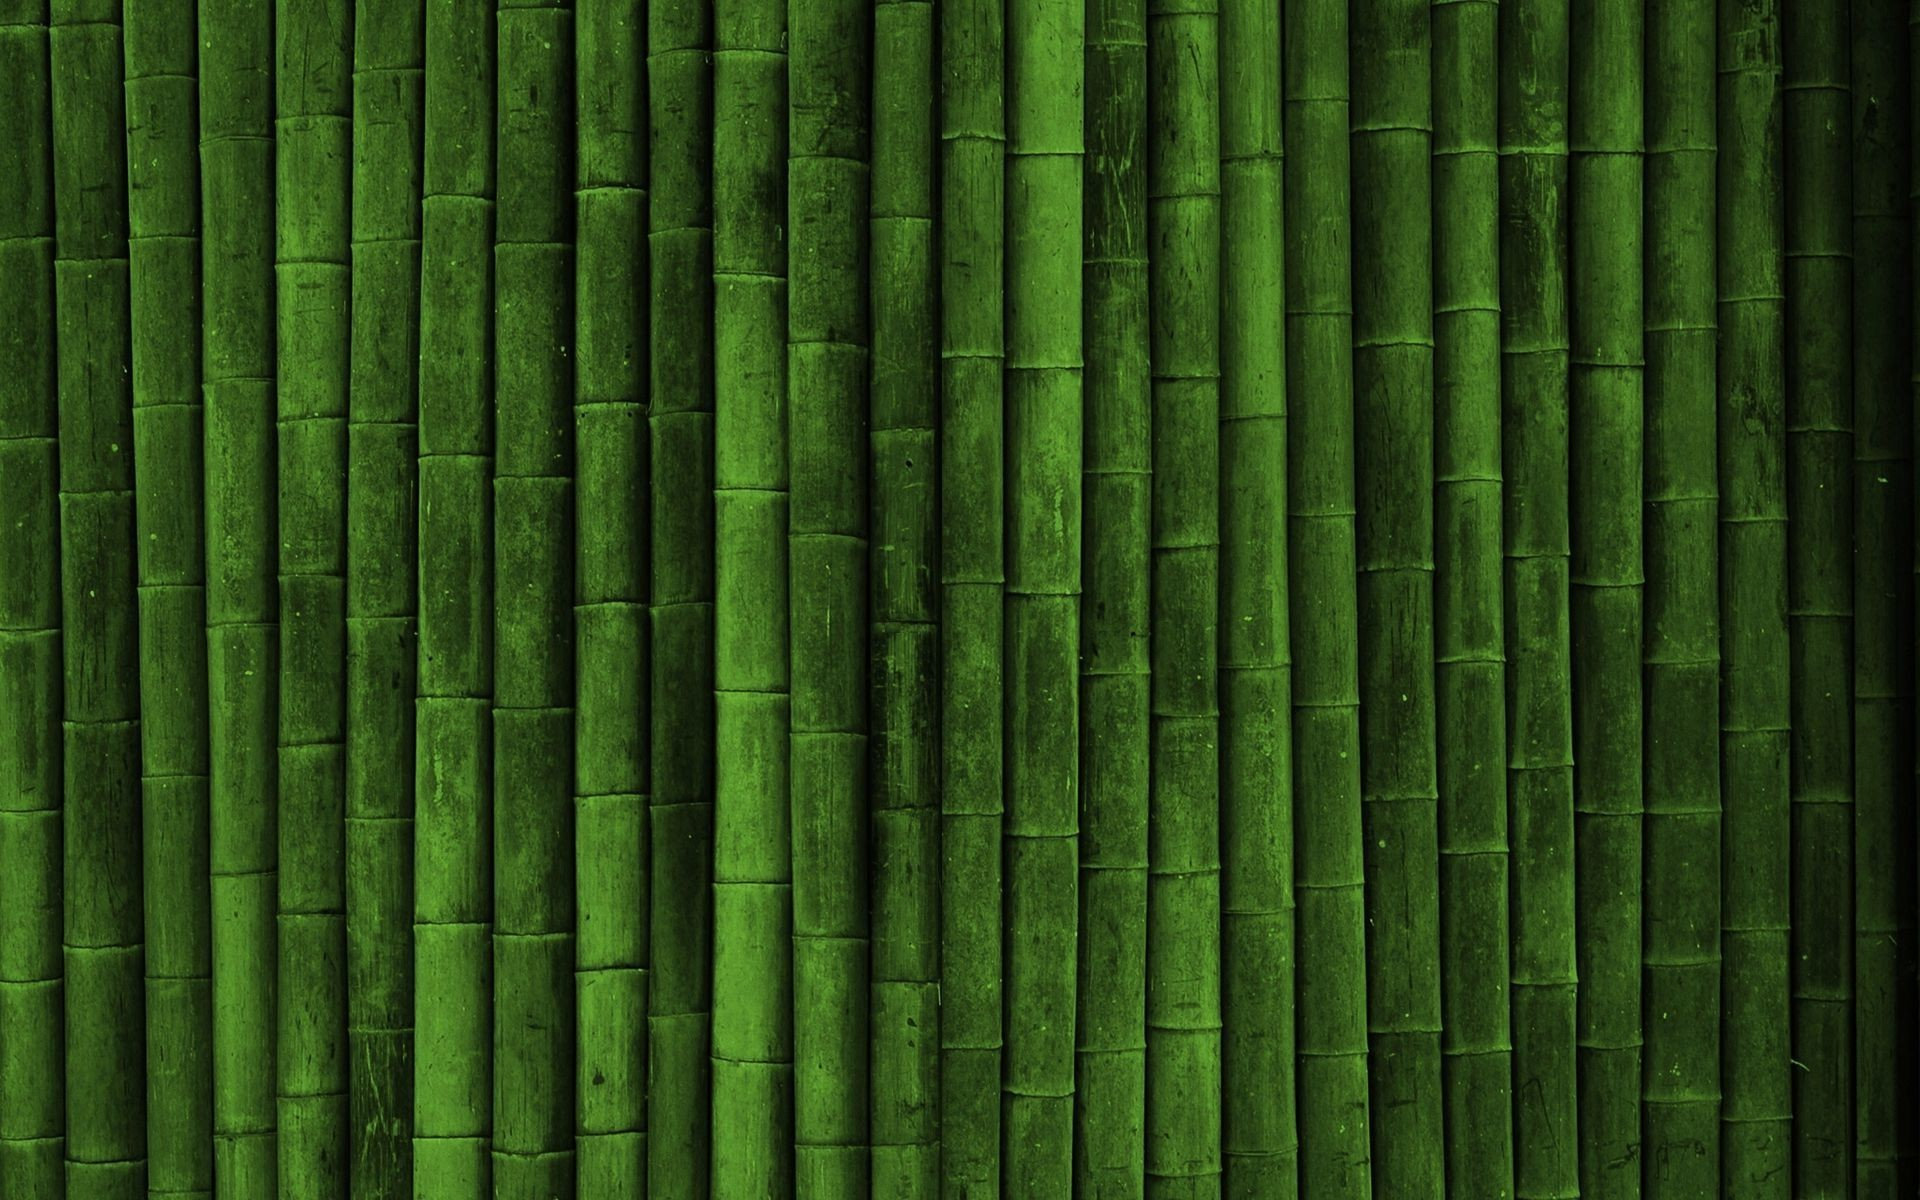 Bamboo Wallpaper Best FREE Wallpaper Collection 1920x1200